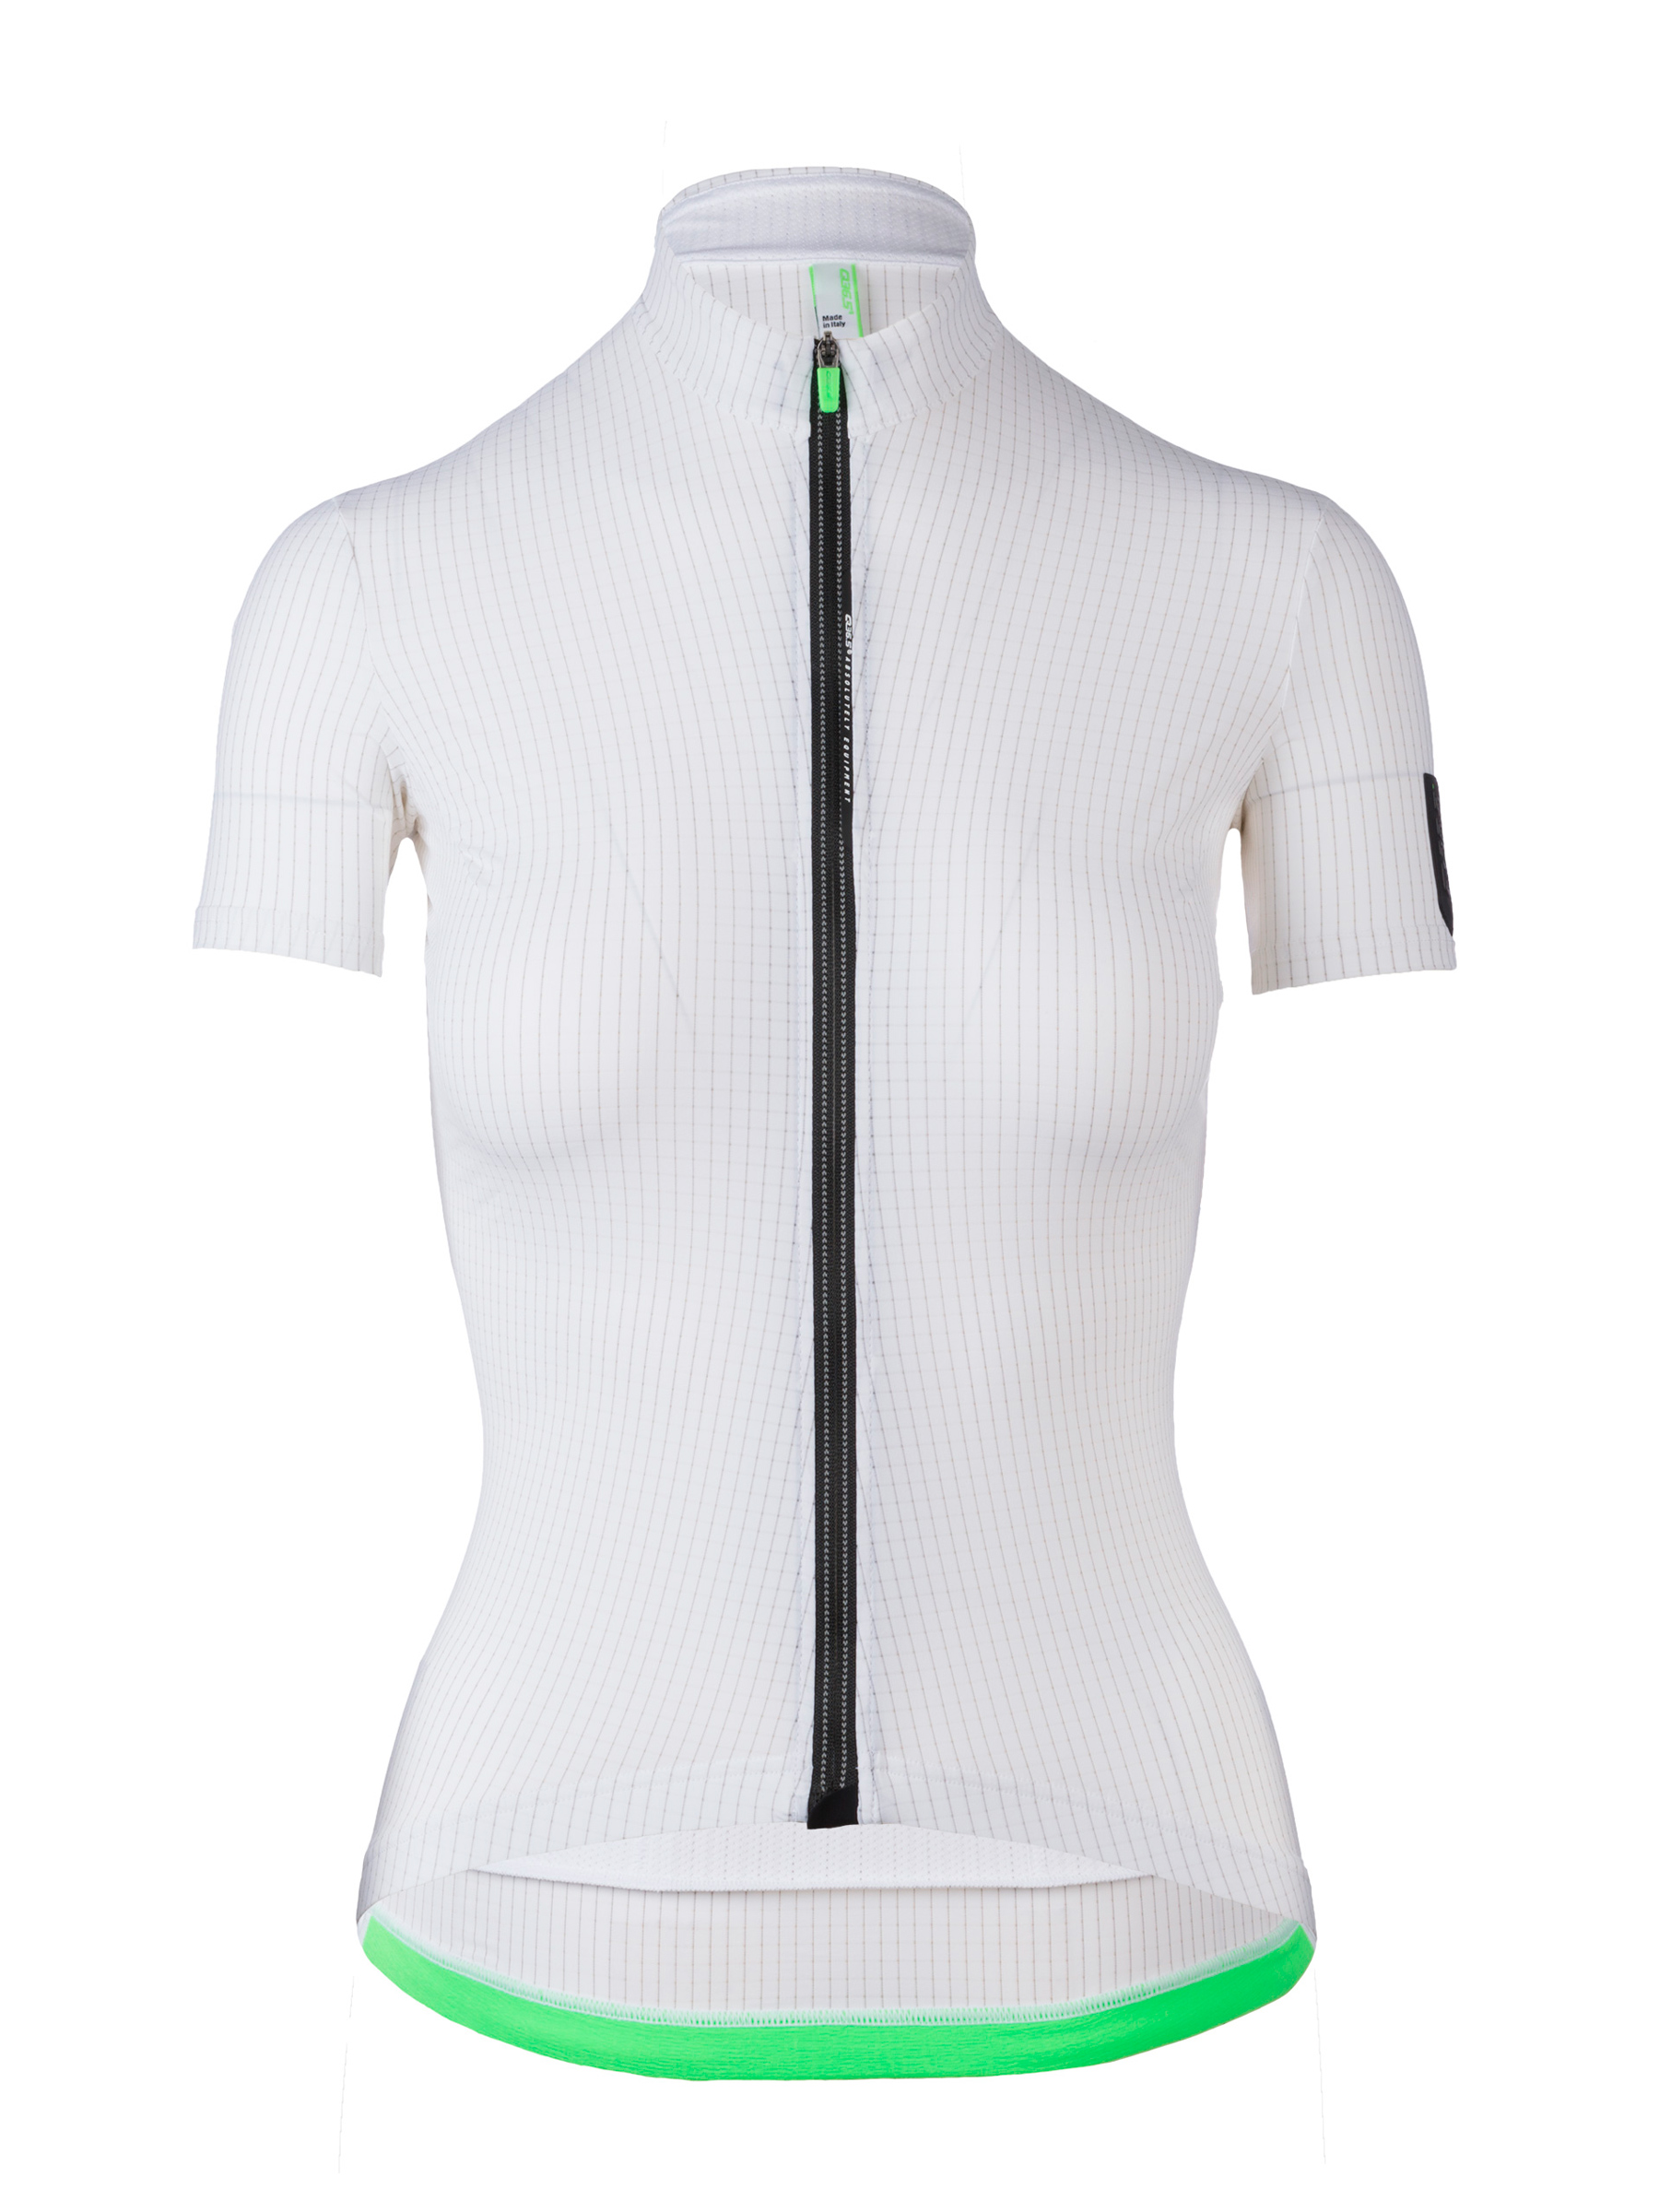 Womens cycling Jersey short sleeve L1 Pinstripe Lady white Q36.5 - back